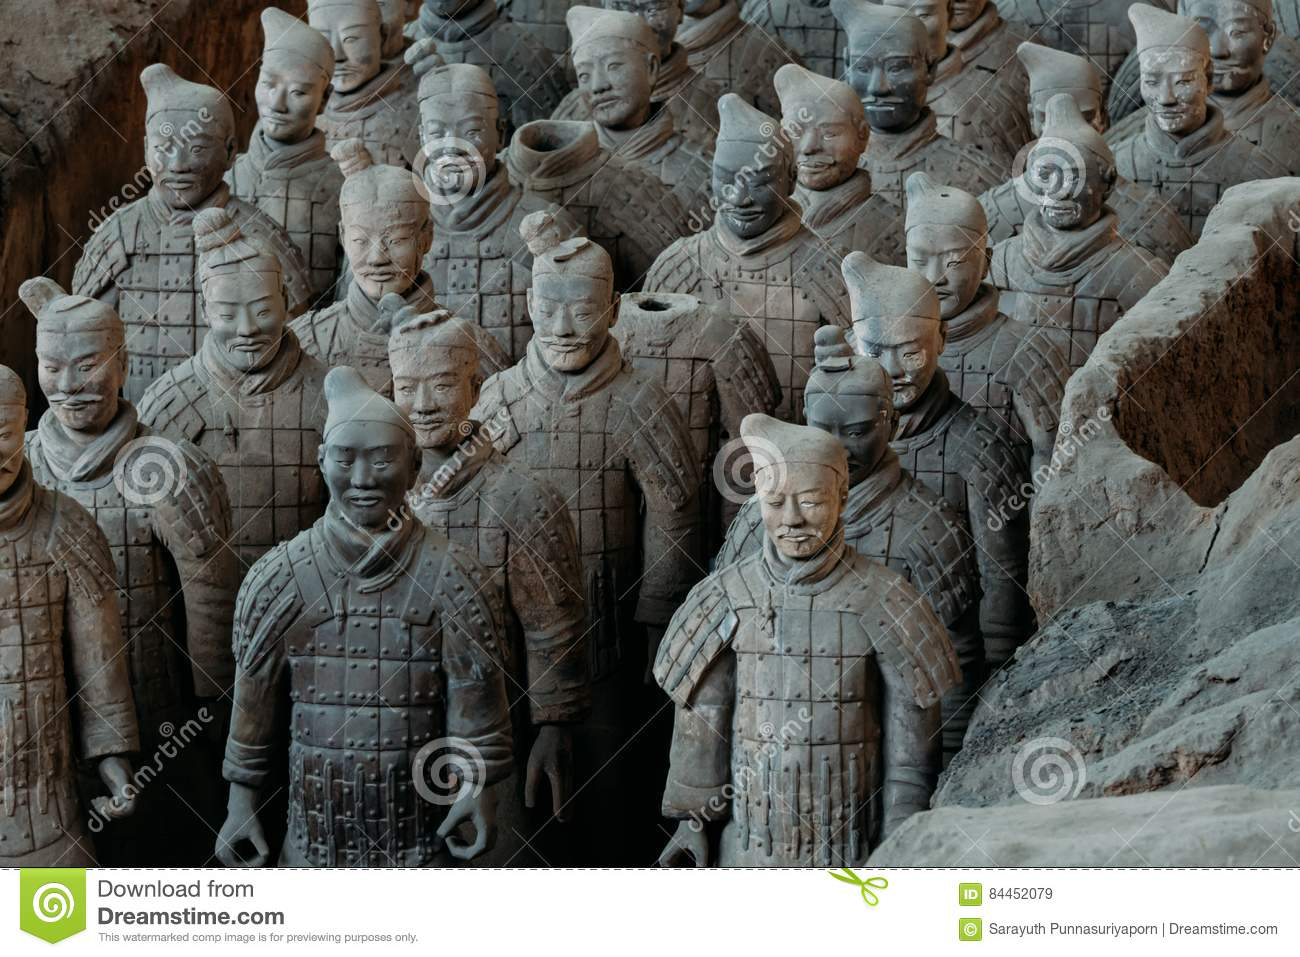 Close-up of famous Terracotta Army of Warriors in Xian, China.